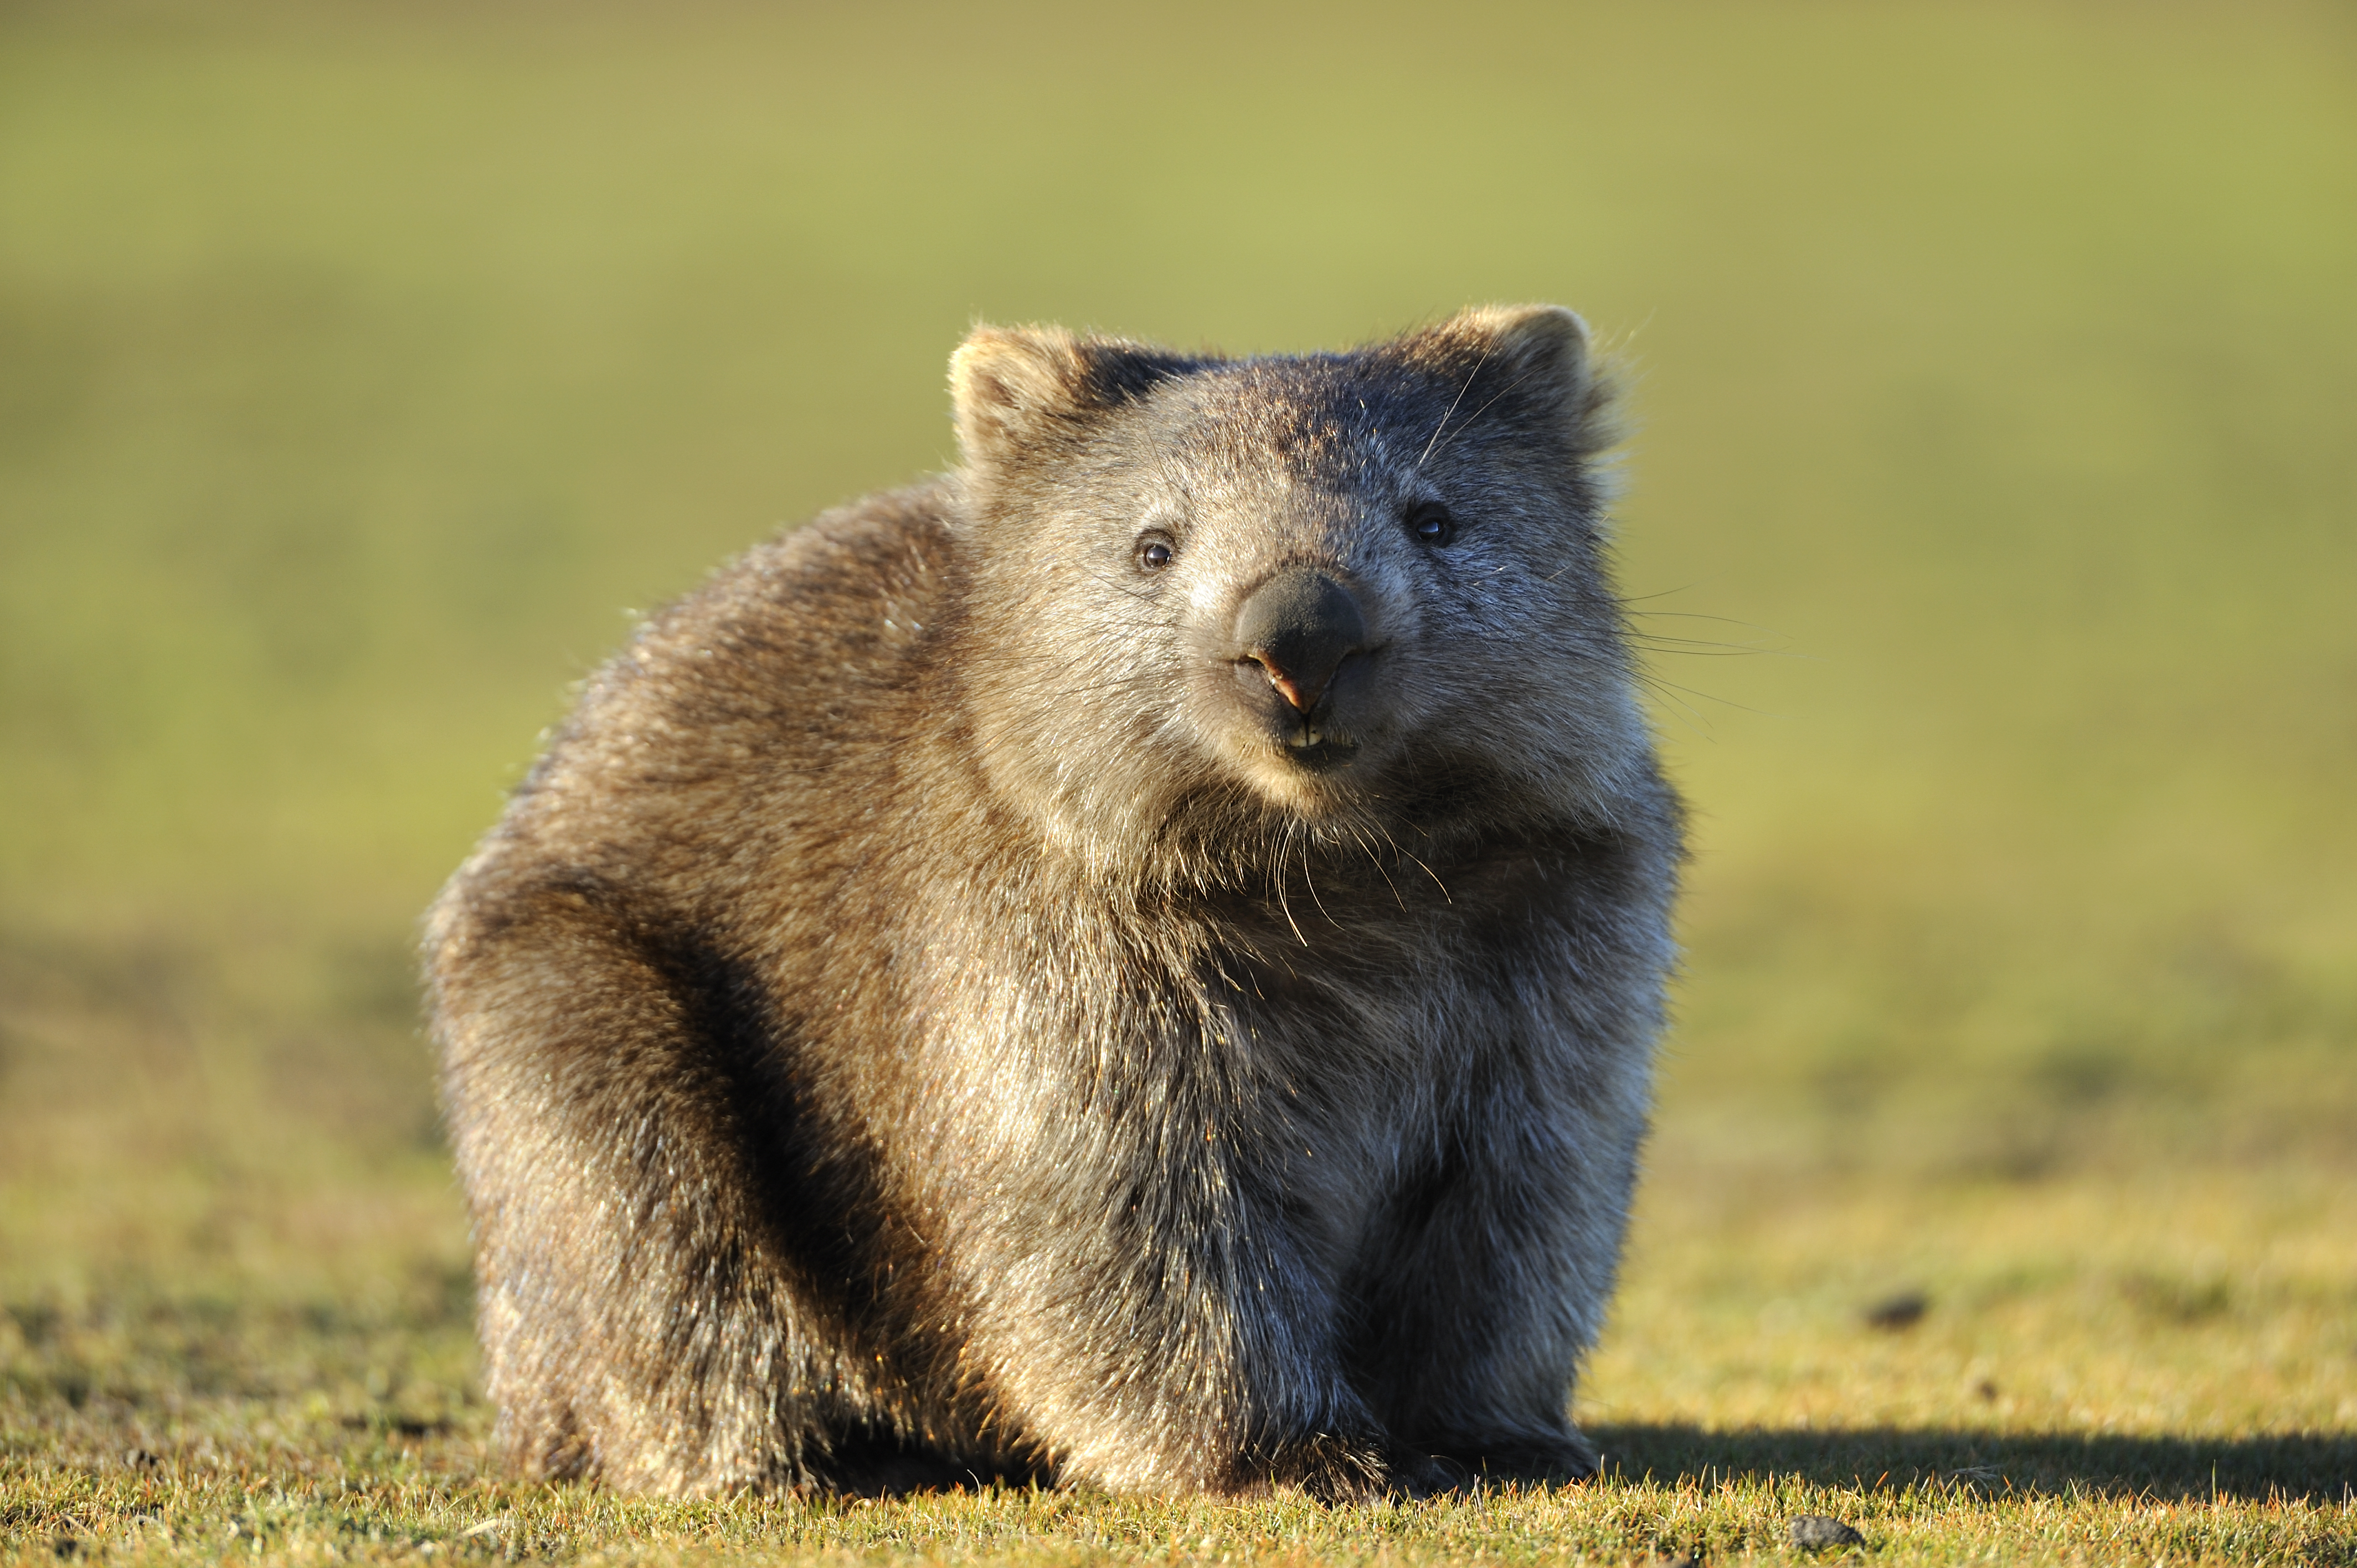 washingtonpost.com - Cleve Wootson - Scientists stuffed balloons into dead wombats to learn why they poop cubes